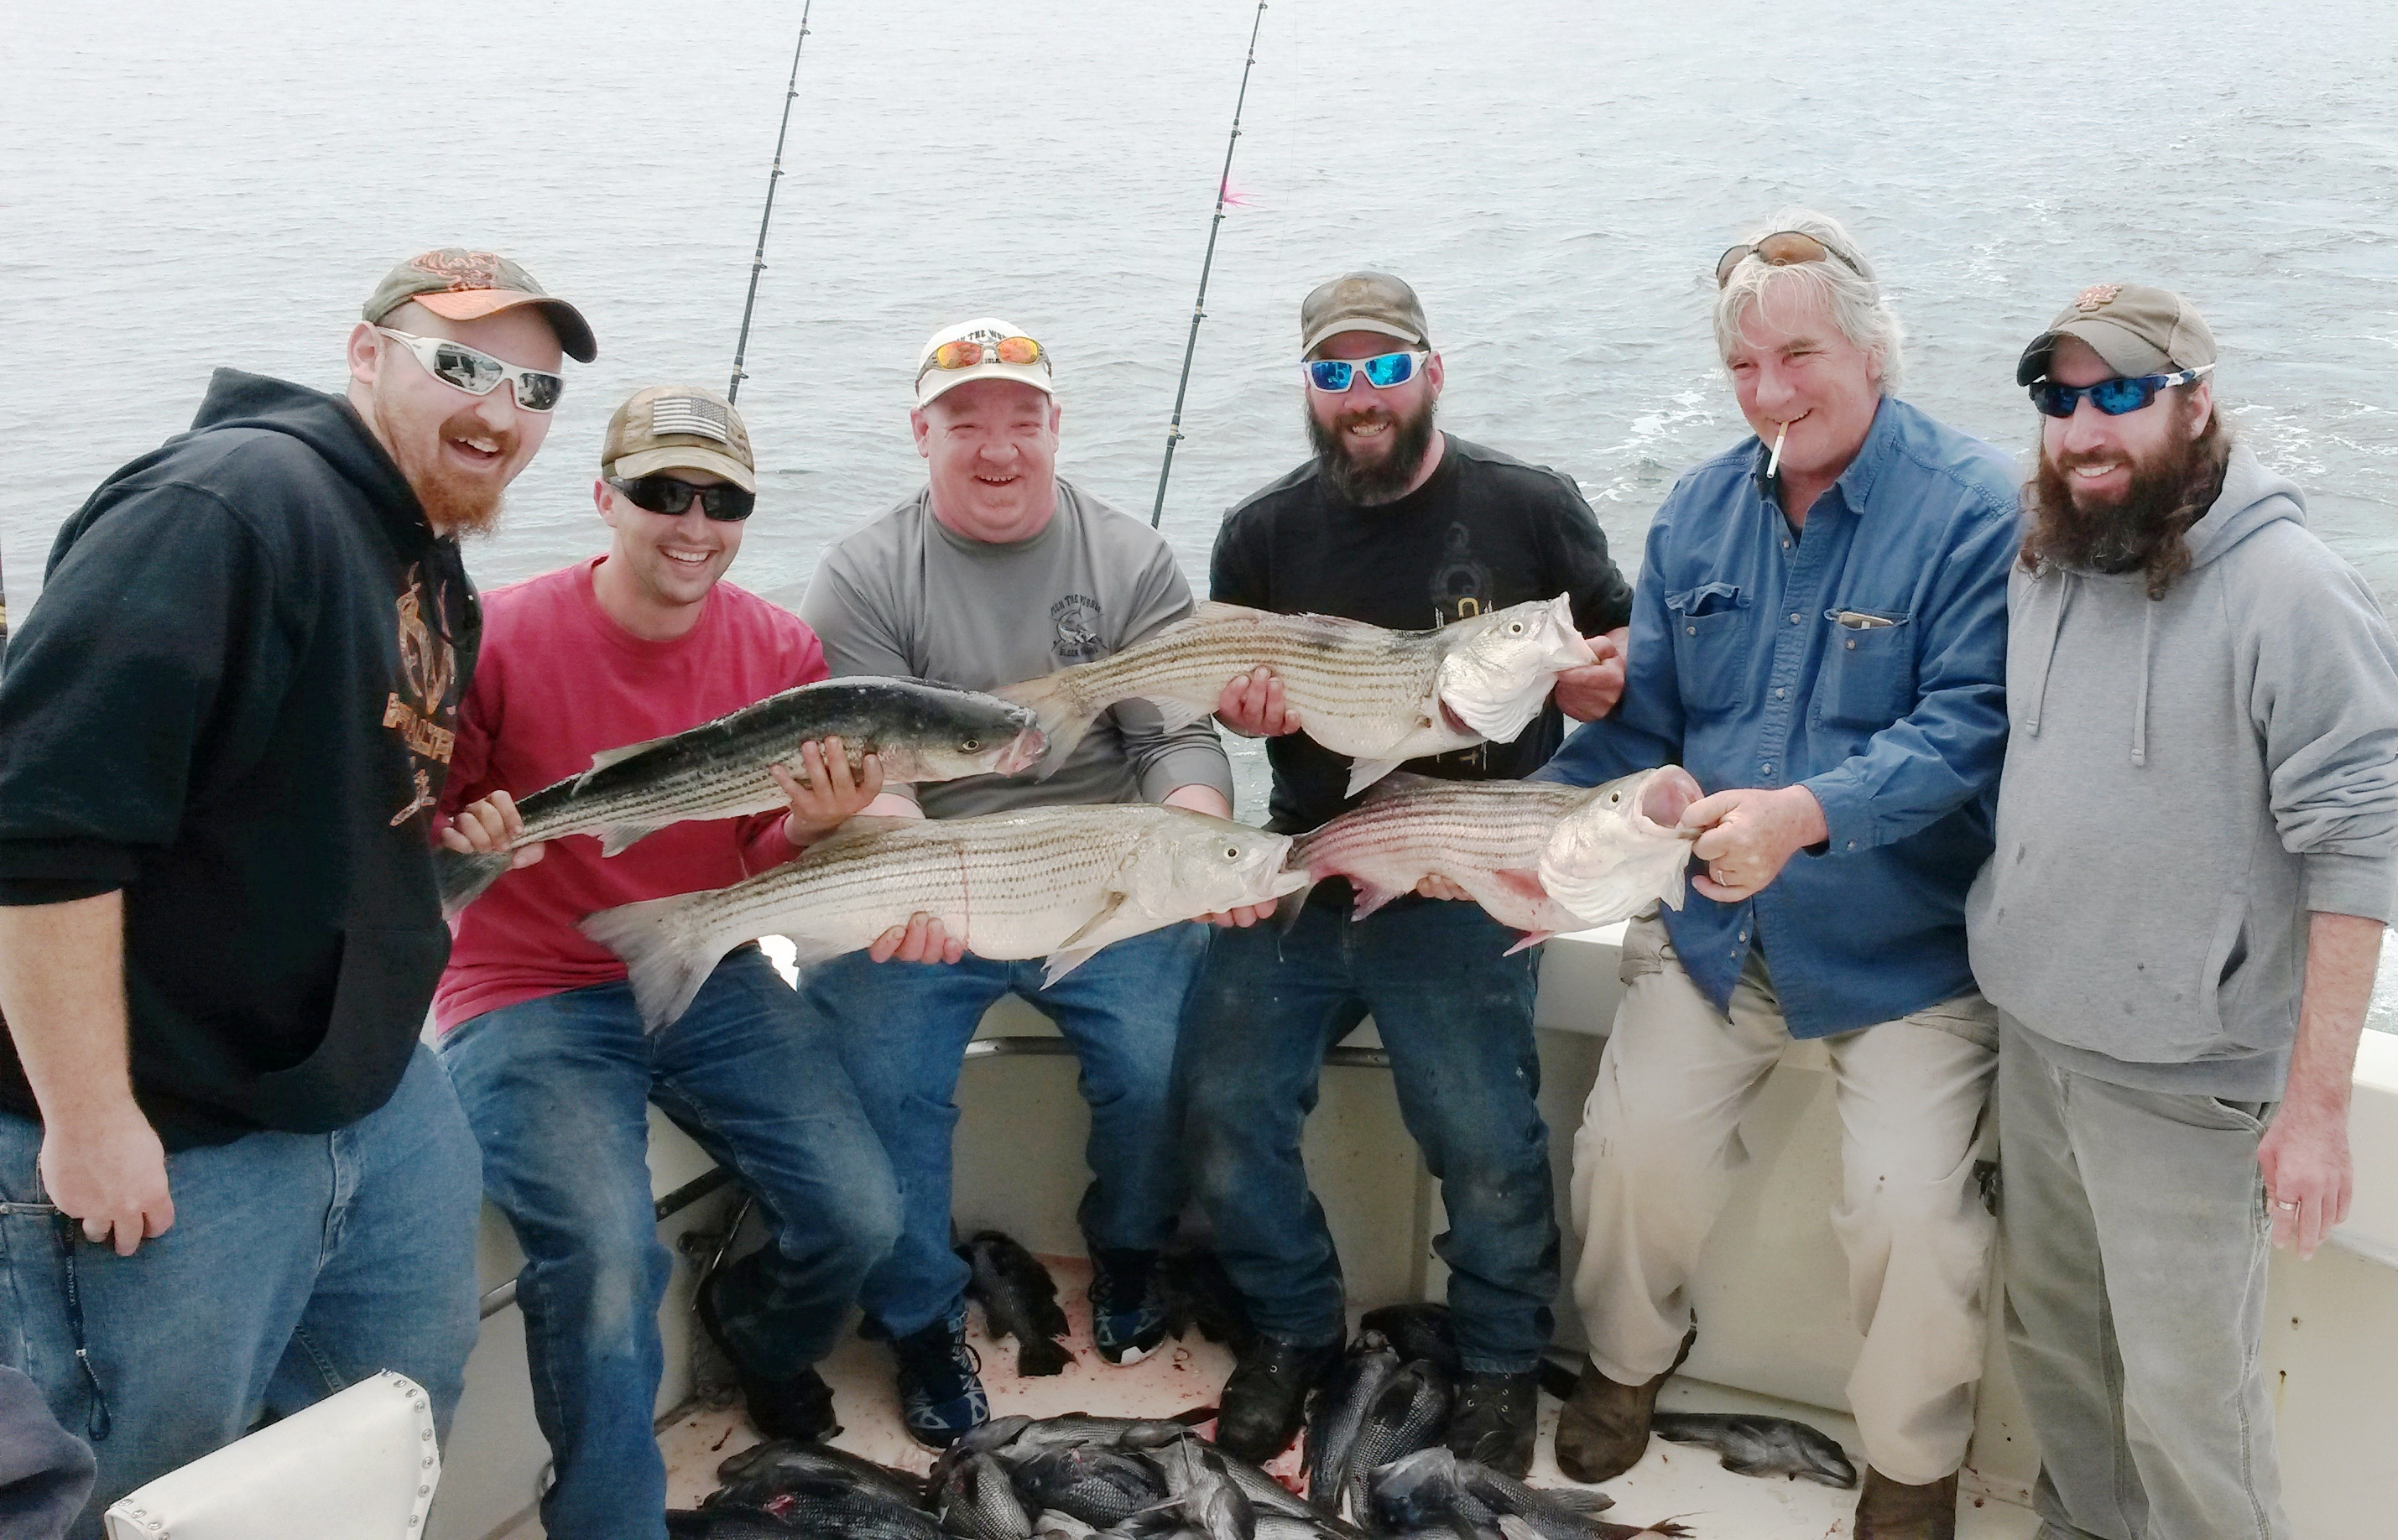 Connecticut fishing report 12 11 16 ct fishing charters for Fishing trips in ct